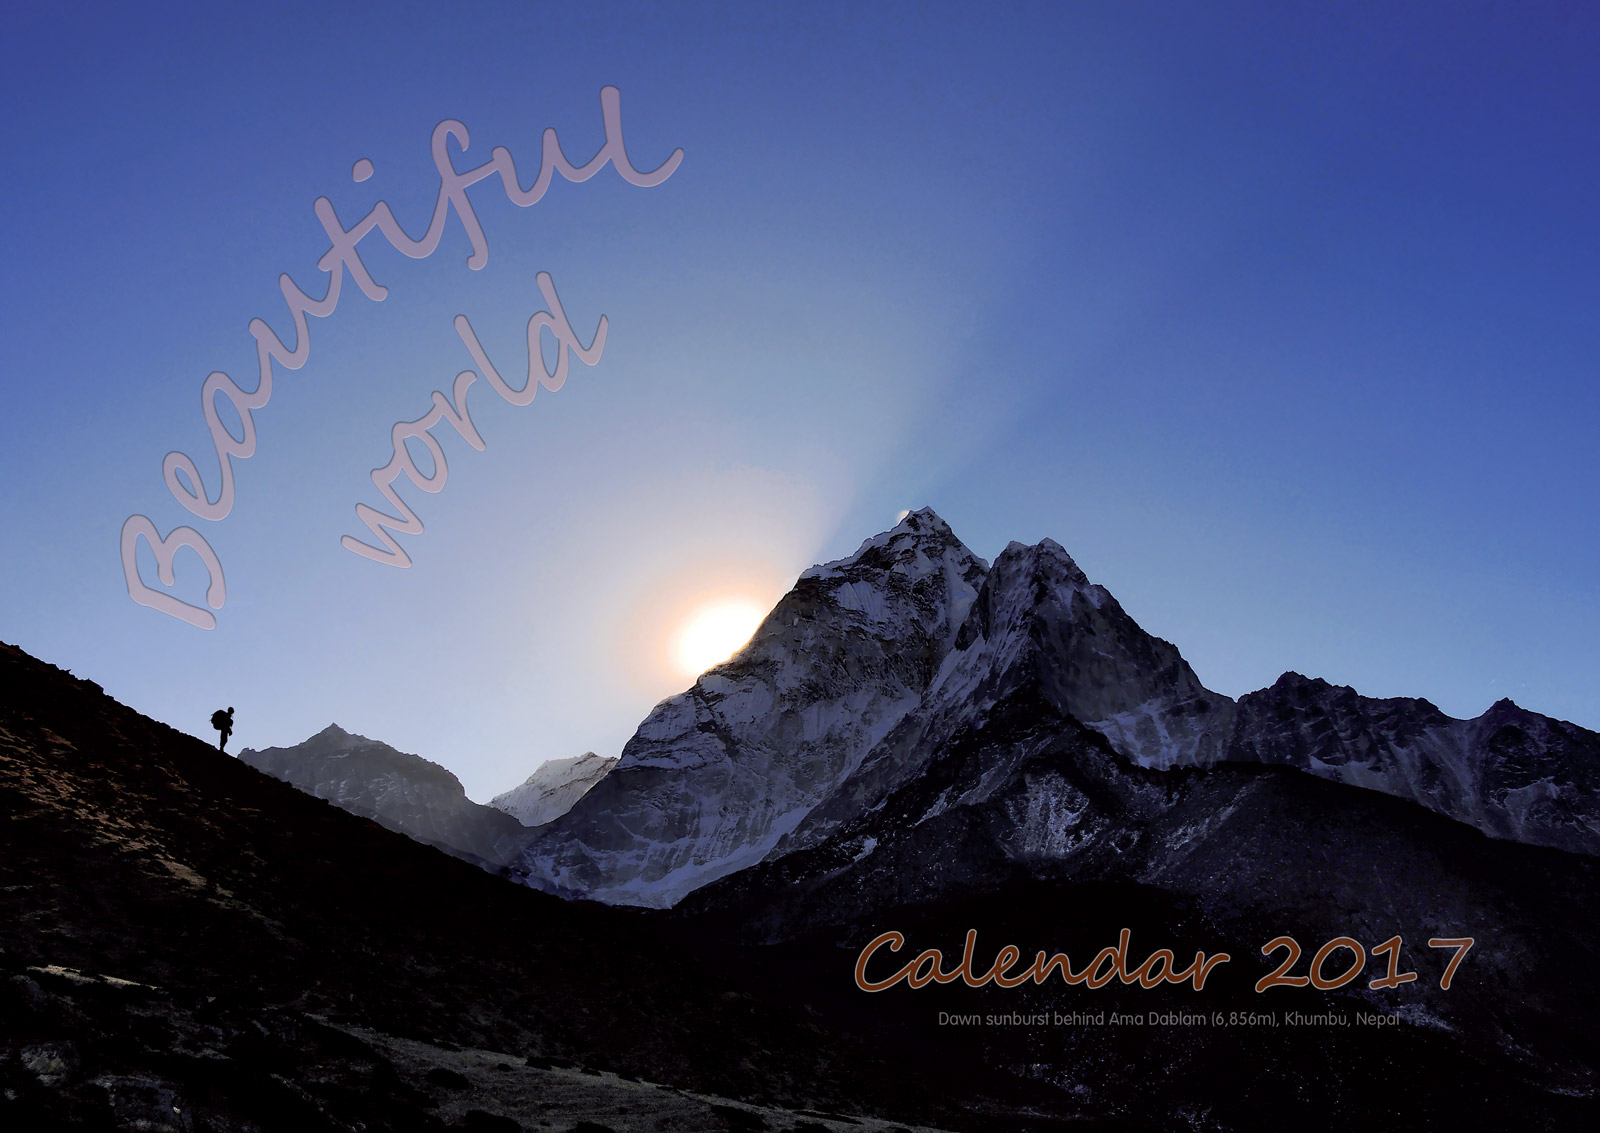 Order your unique large format OccasionalClimber.co.nz calendar now